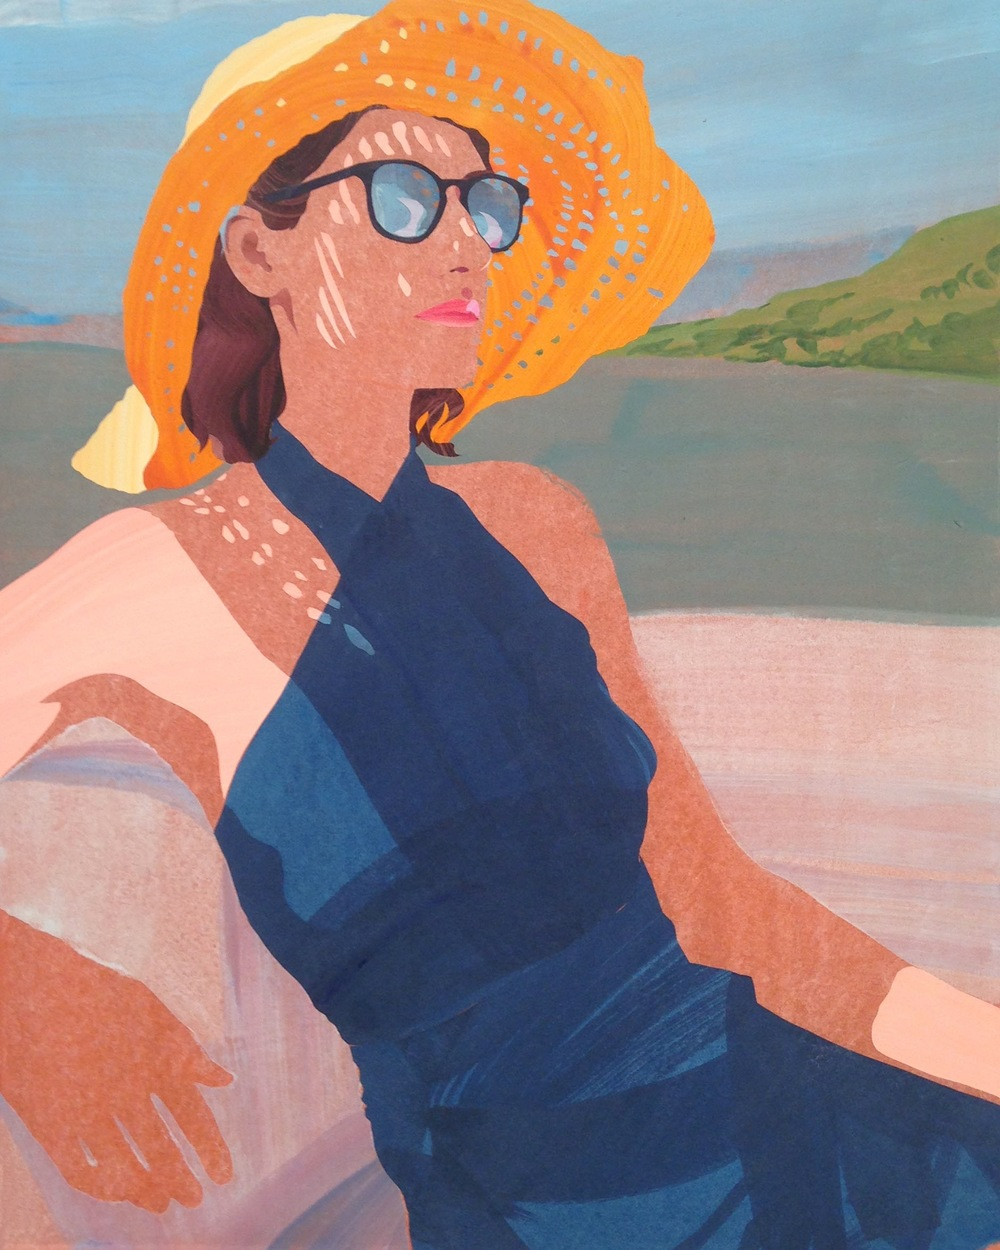 Sebastian Blanck ,  Isca in Her Sun Hat  (2015). 16 x 20 inches. Watercolor and collage on stretched paper.